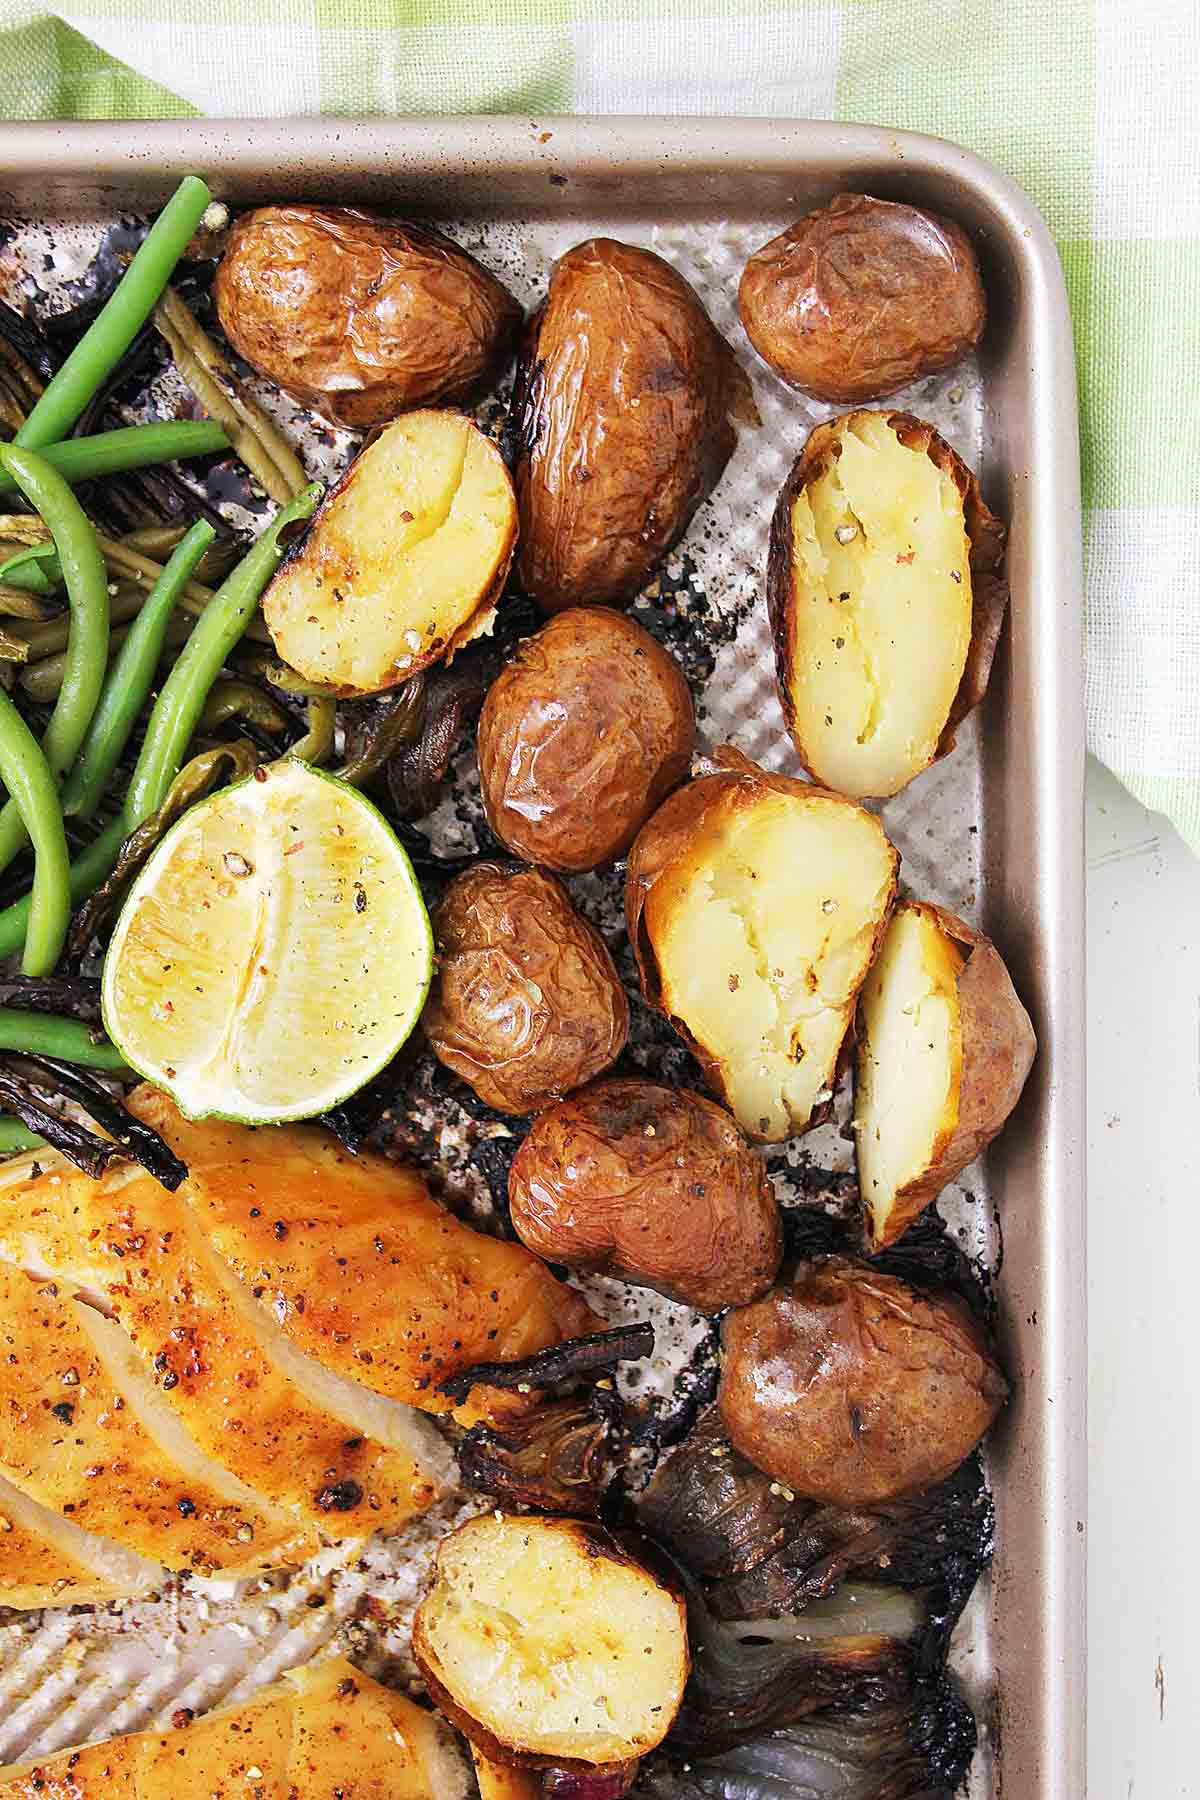 sheet pan with roasted potatoes and chicken.